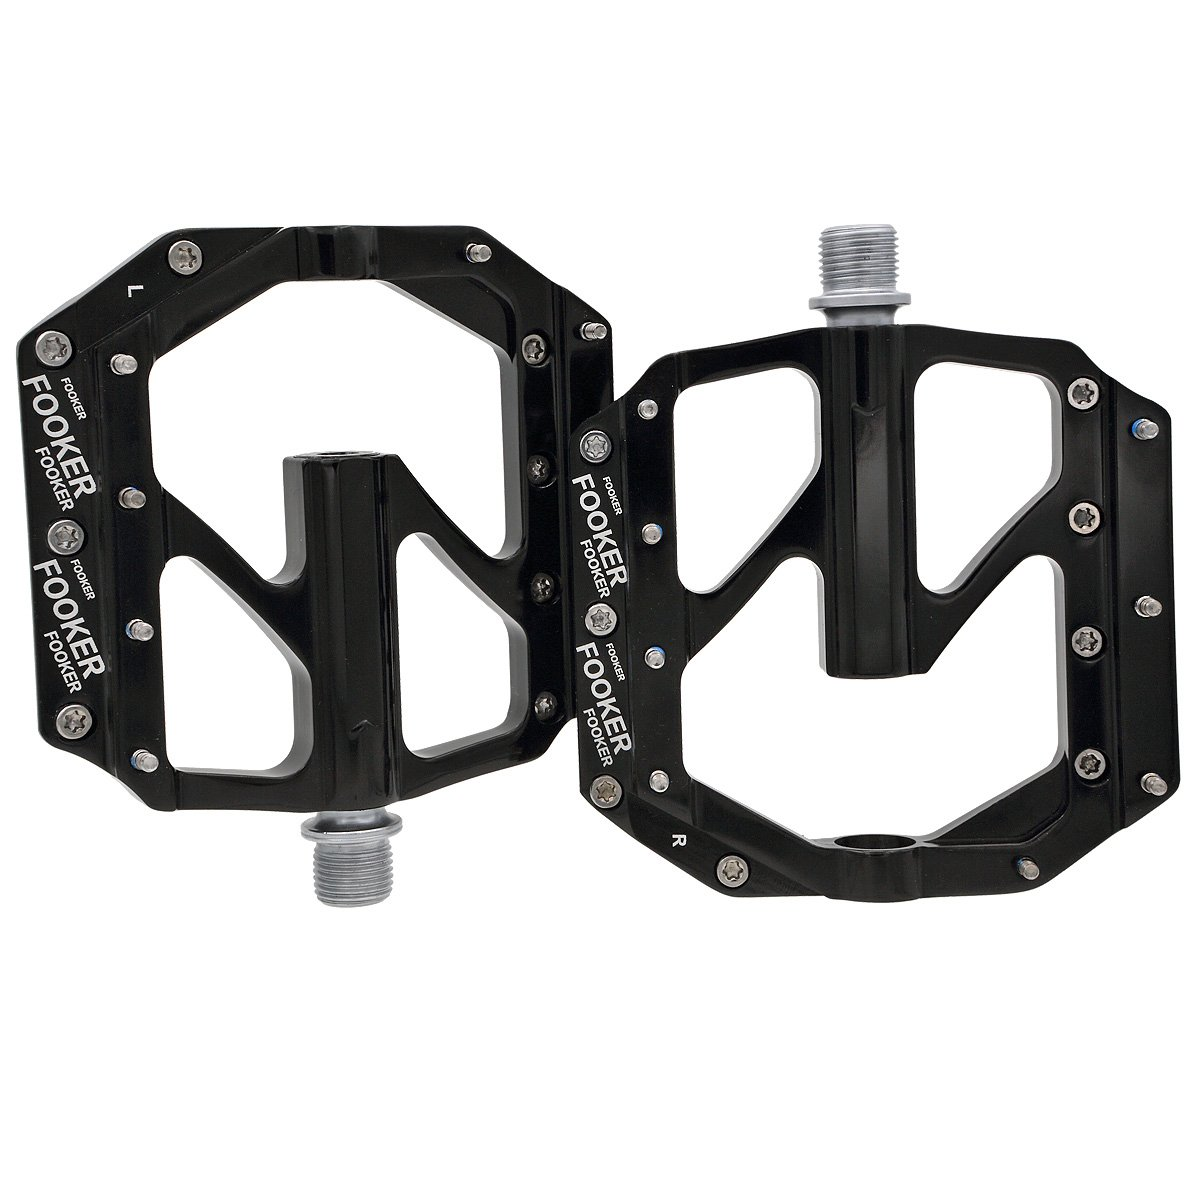 FOOKER Bike Pedals Non-Slip Aluminum Alloy MTB Mountain Bike Pedals 3 Bearing 9/16'' for Road BMX MTB Fixie Bikes by FOOKER (Image #3)